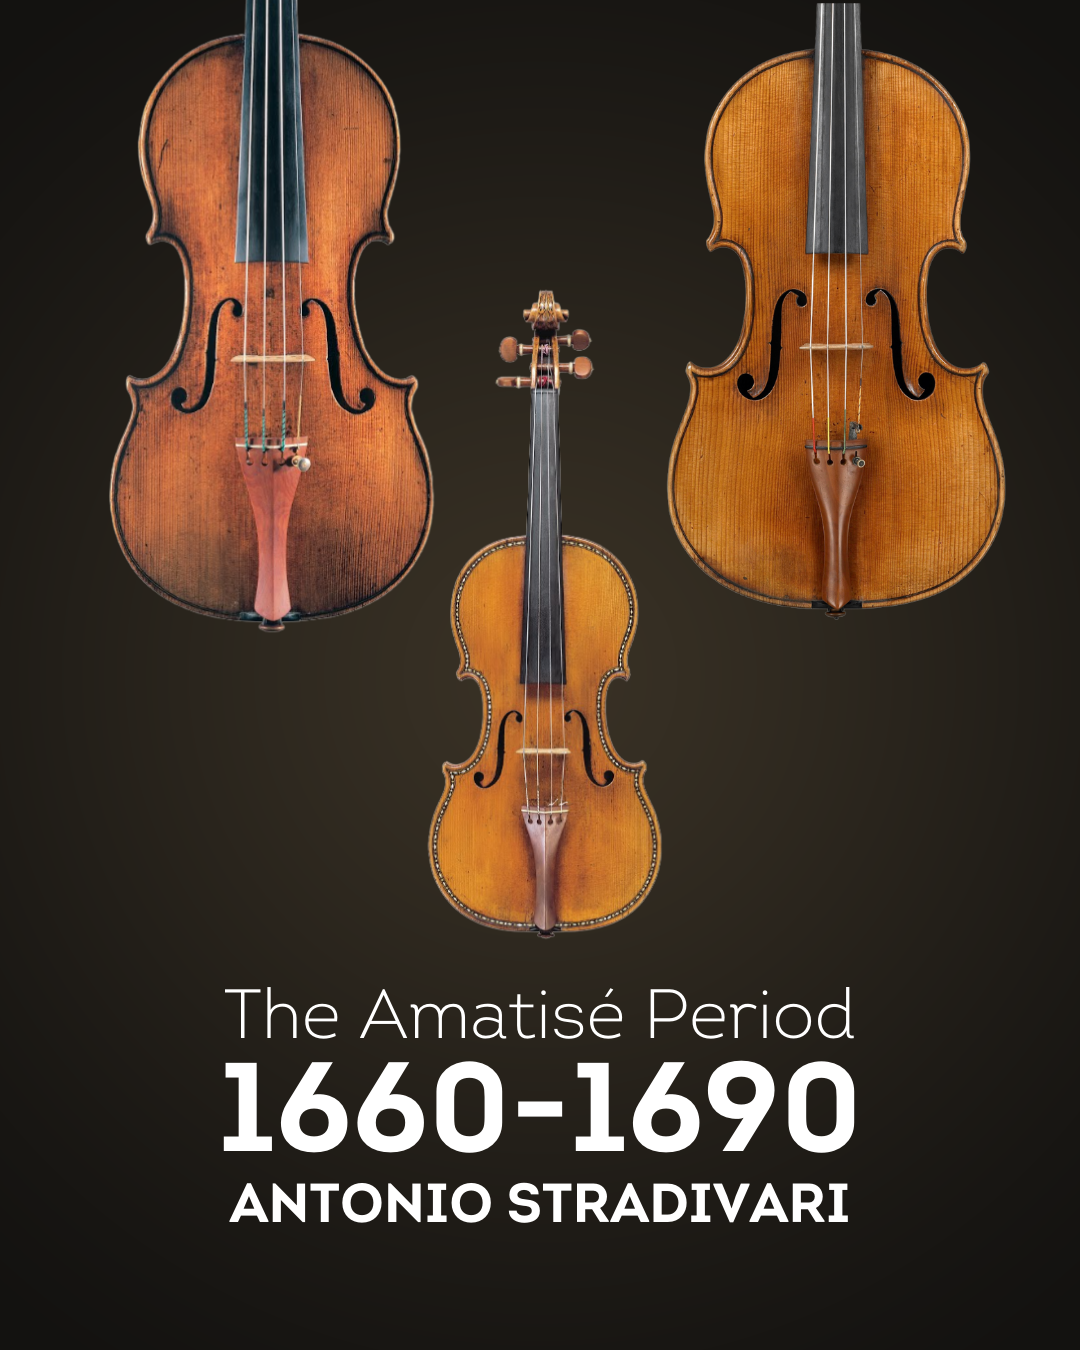 Stradivari, the story behind the maker: Part one, the Amatisé period